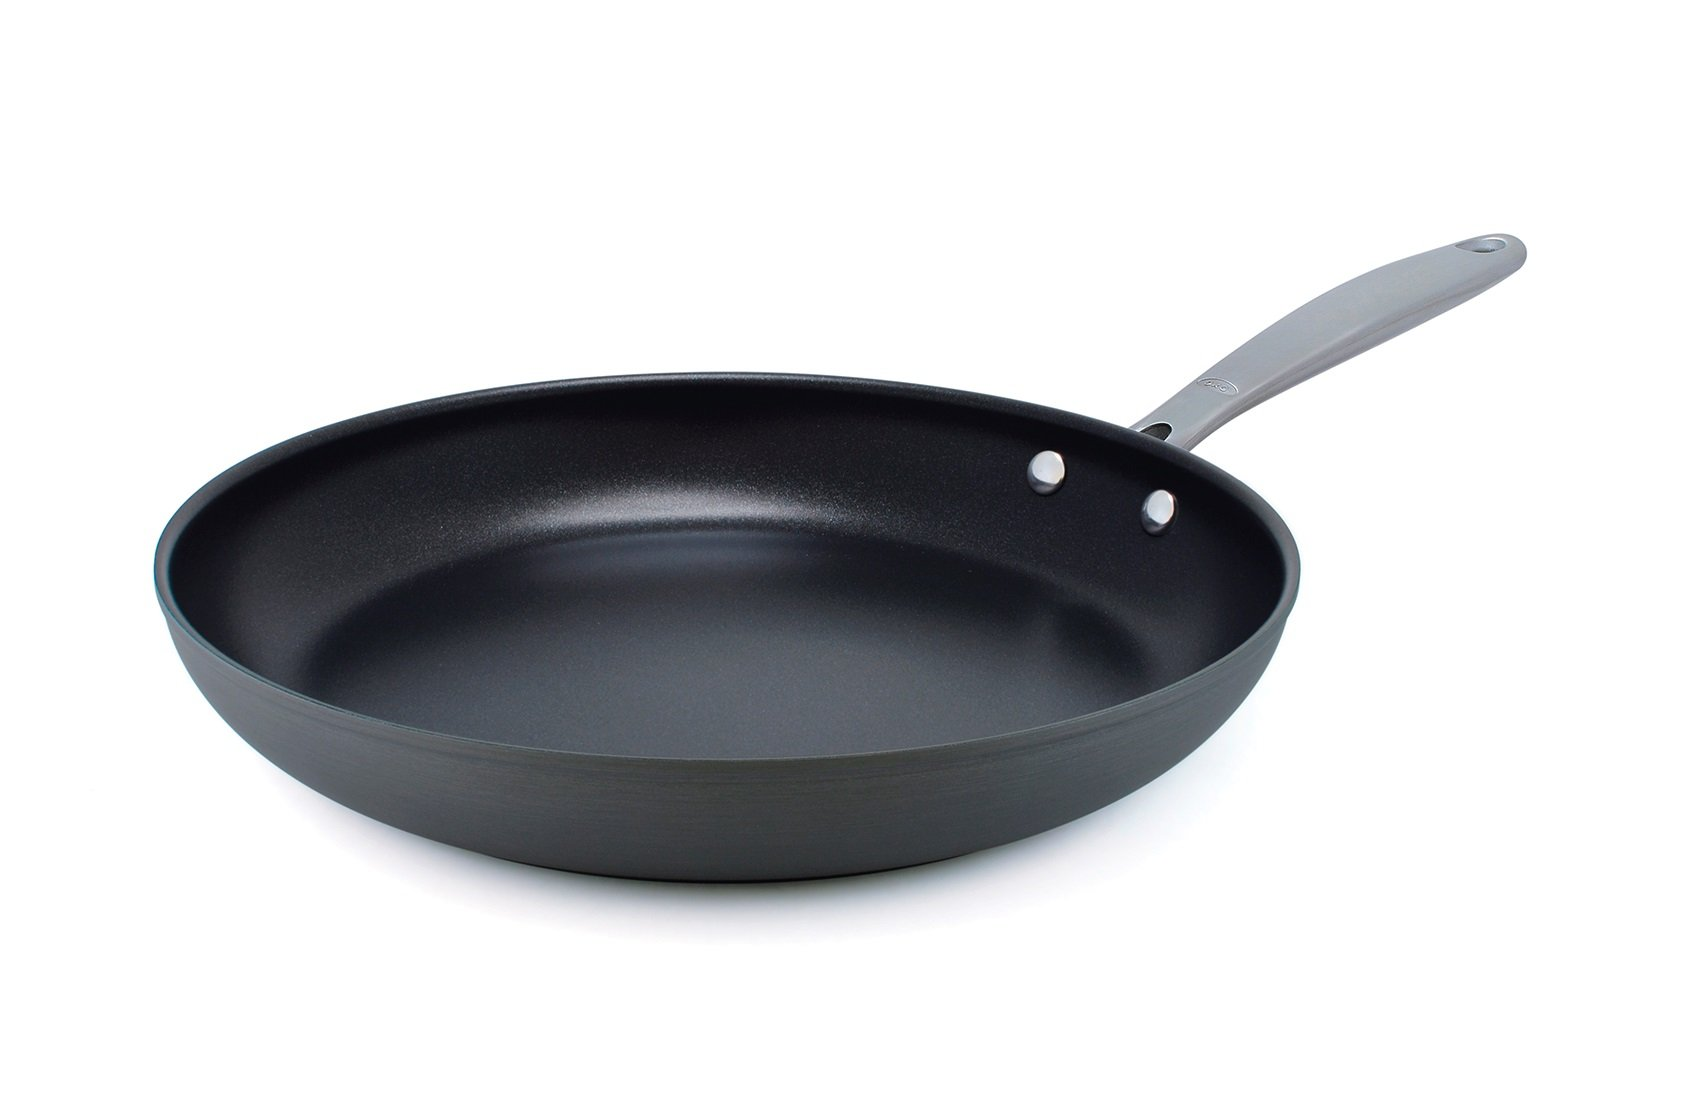 OXO Good Grips Non-Stick Pro Dishwasher safe 12'' Open Frypan by OXO